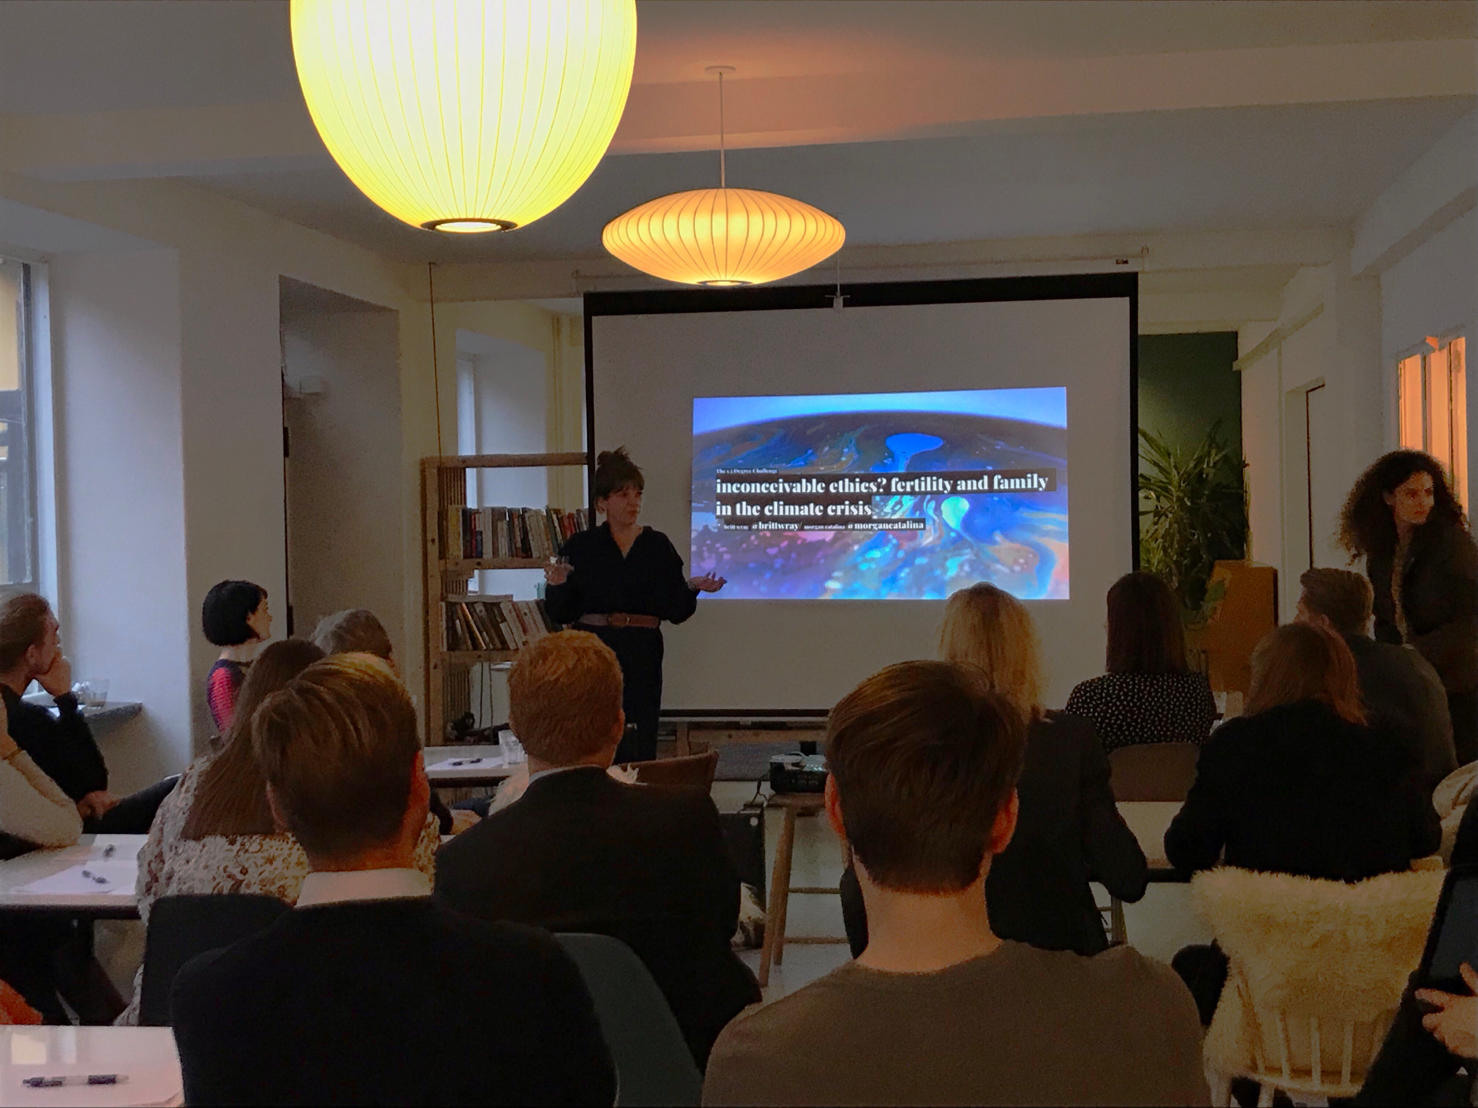 "1.5 Degree Movement workshop ""Inconceivable ethics? Fertility and family in the climate crisis"" in Copenhagen, Denmark."